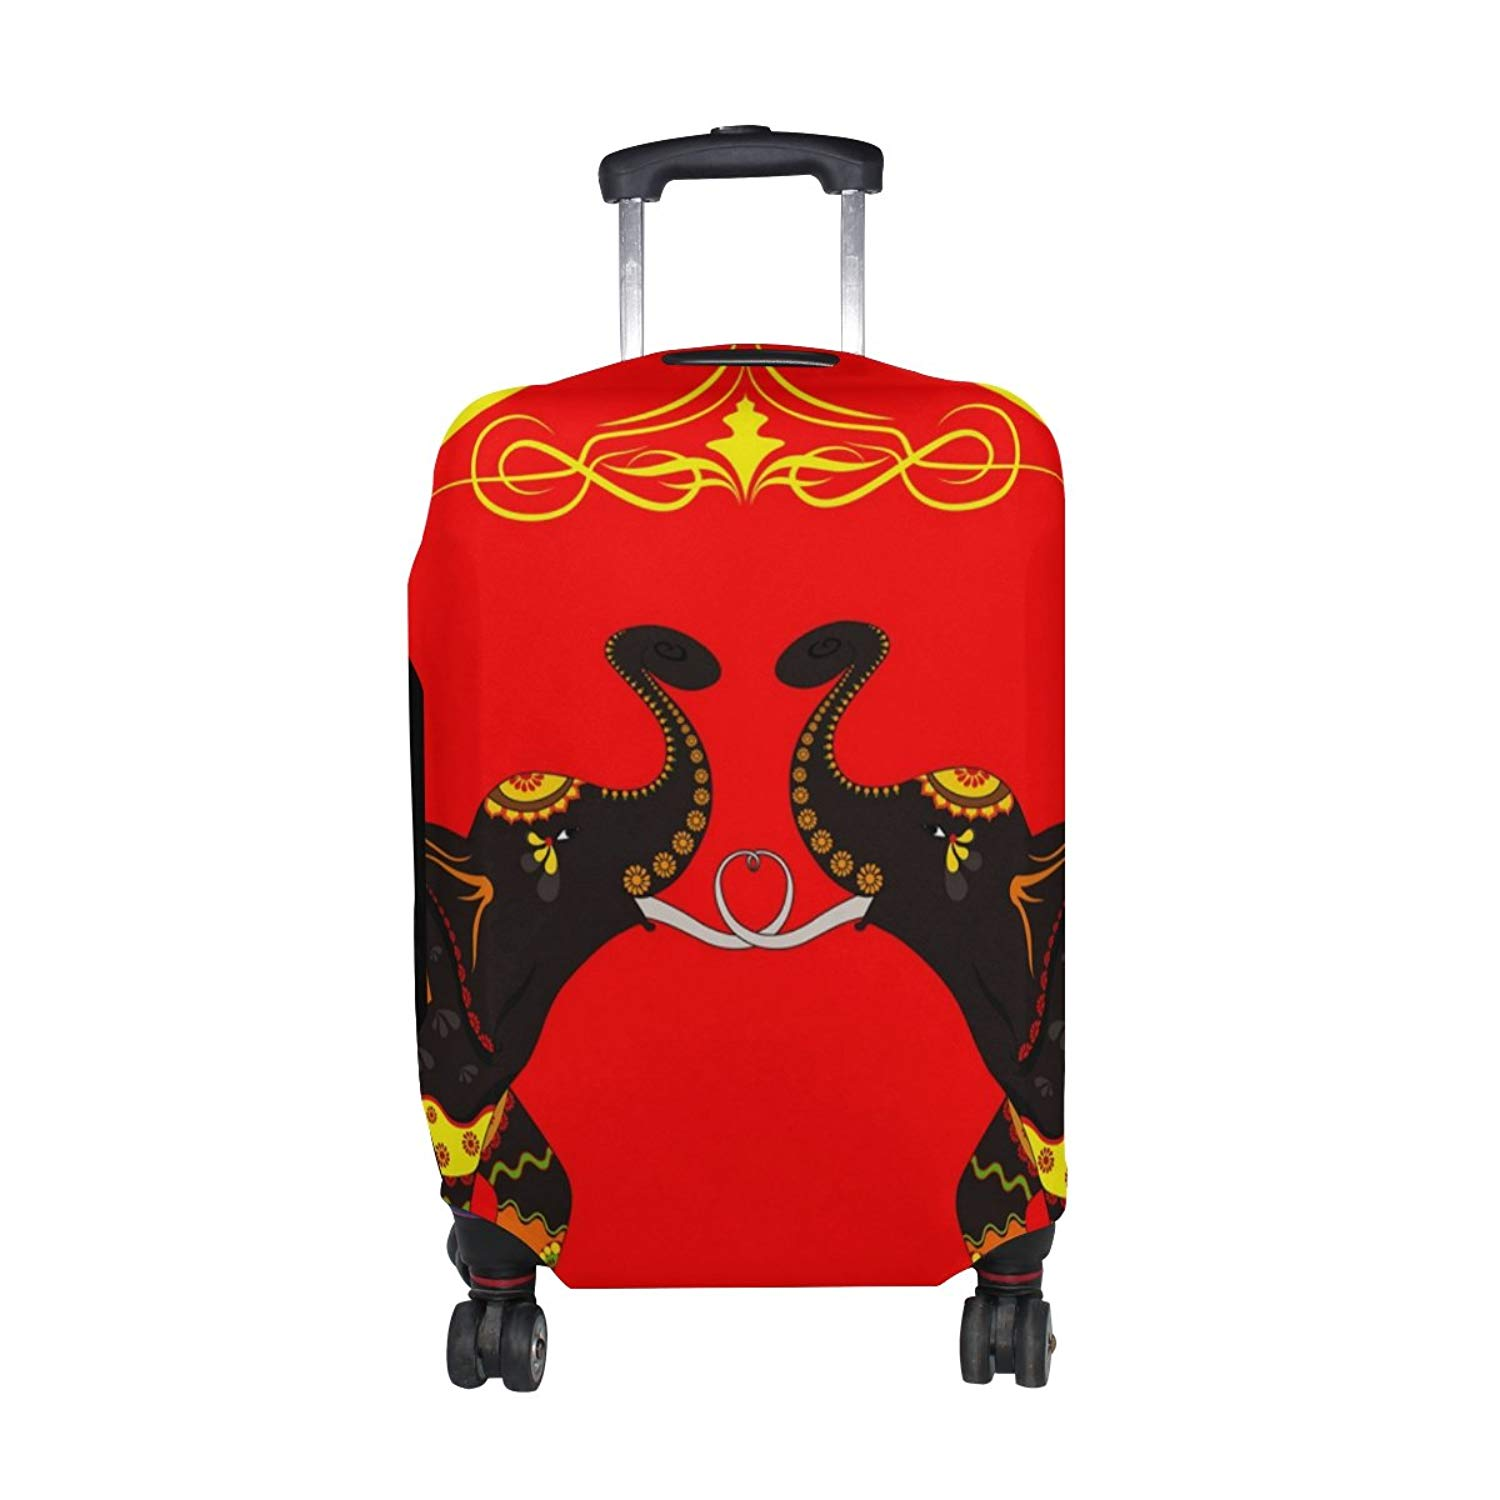 FOLPPLY The Peacock Luggage Cover Baggage Suitcase Travel Protector Fit for 18-32 Inch